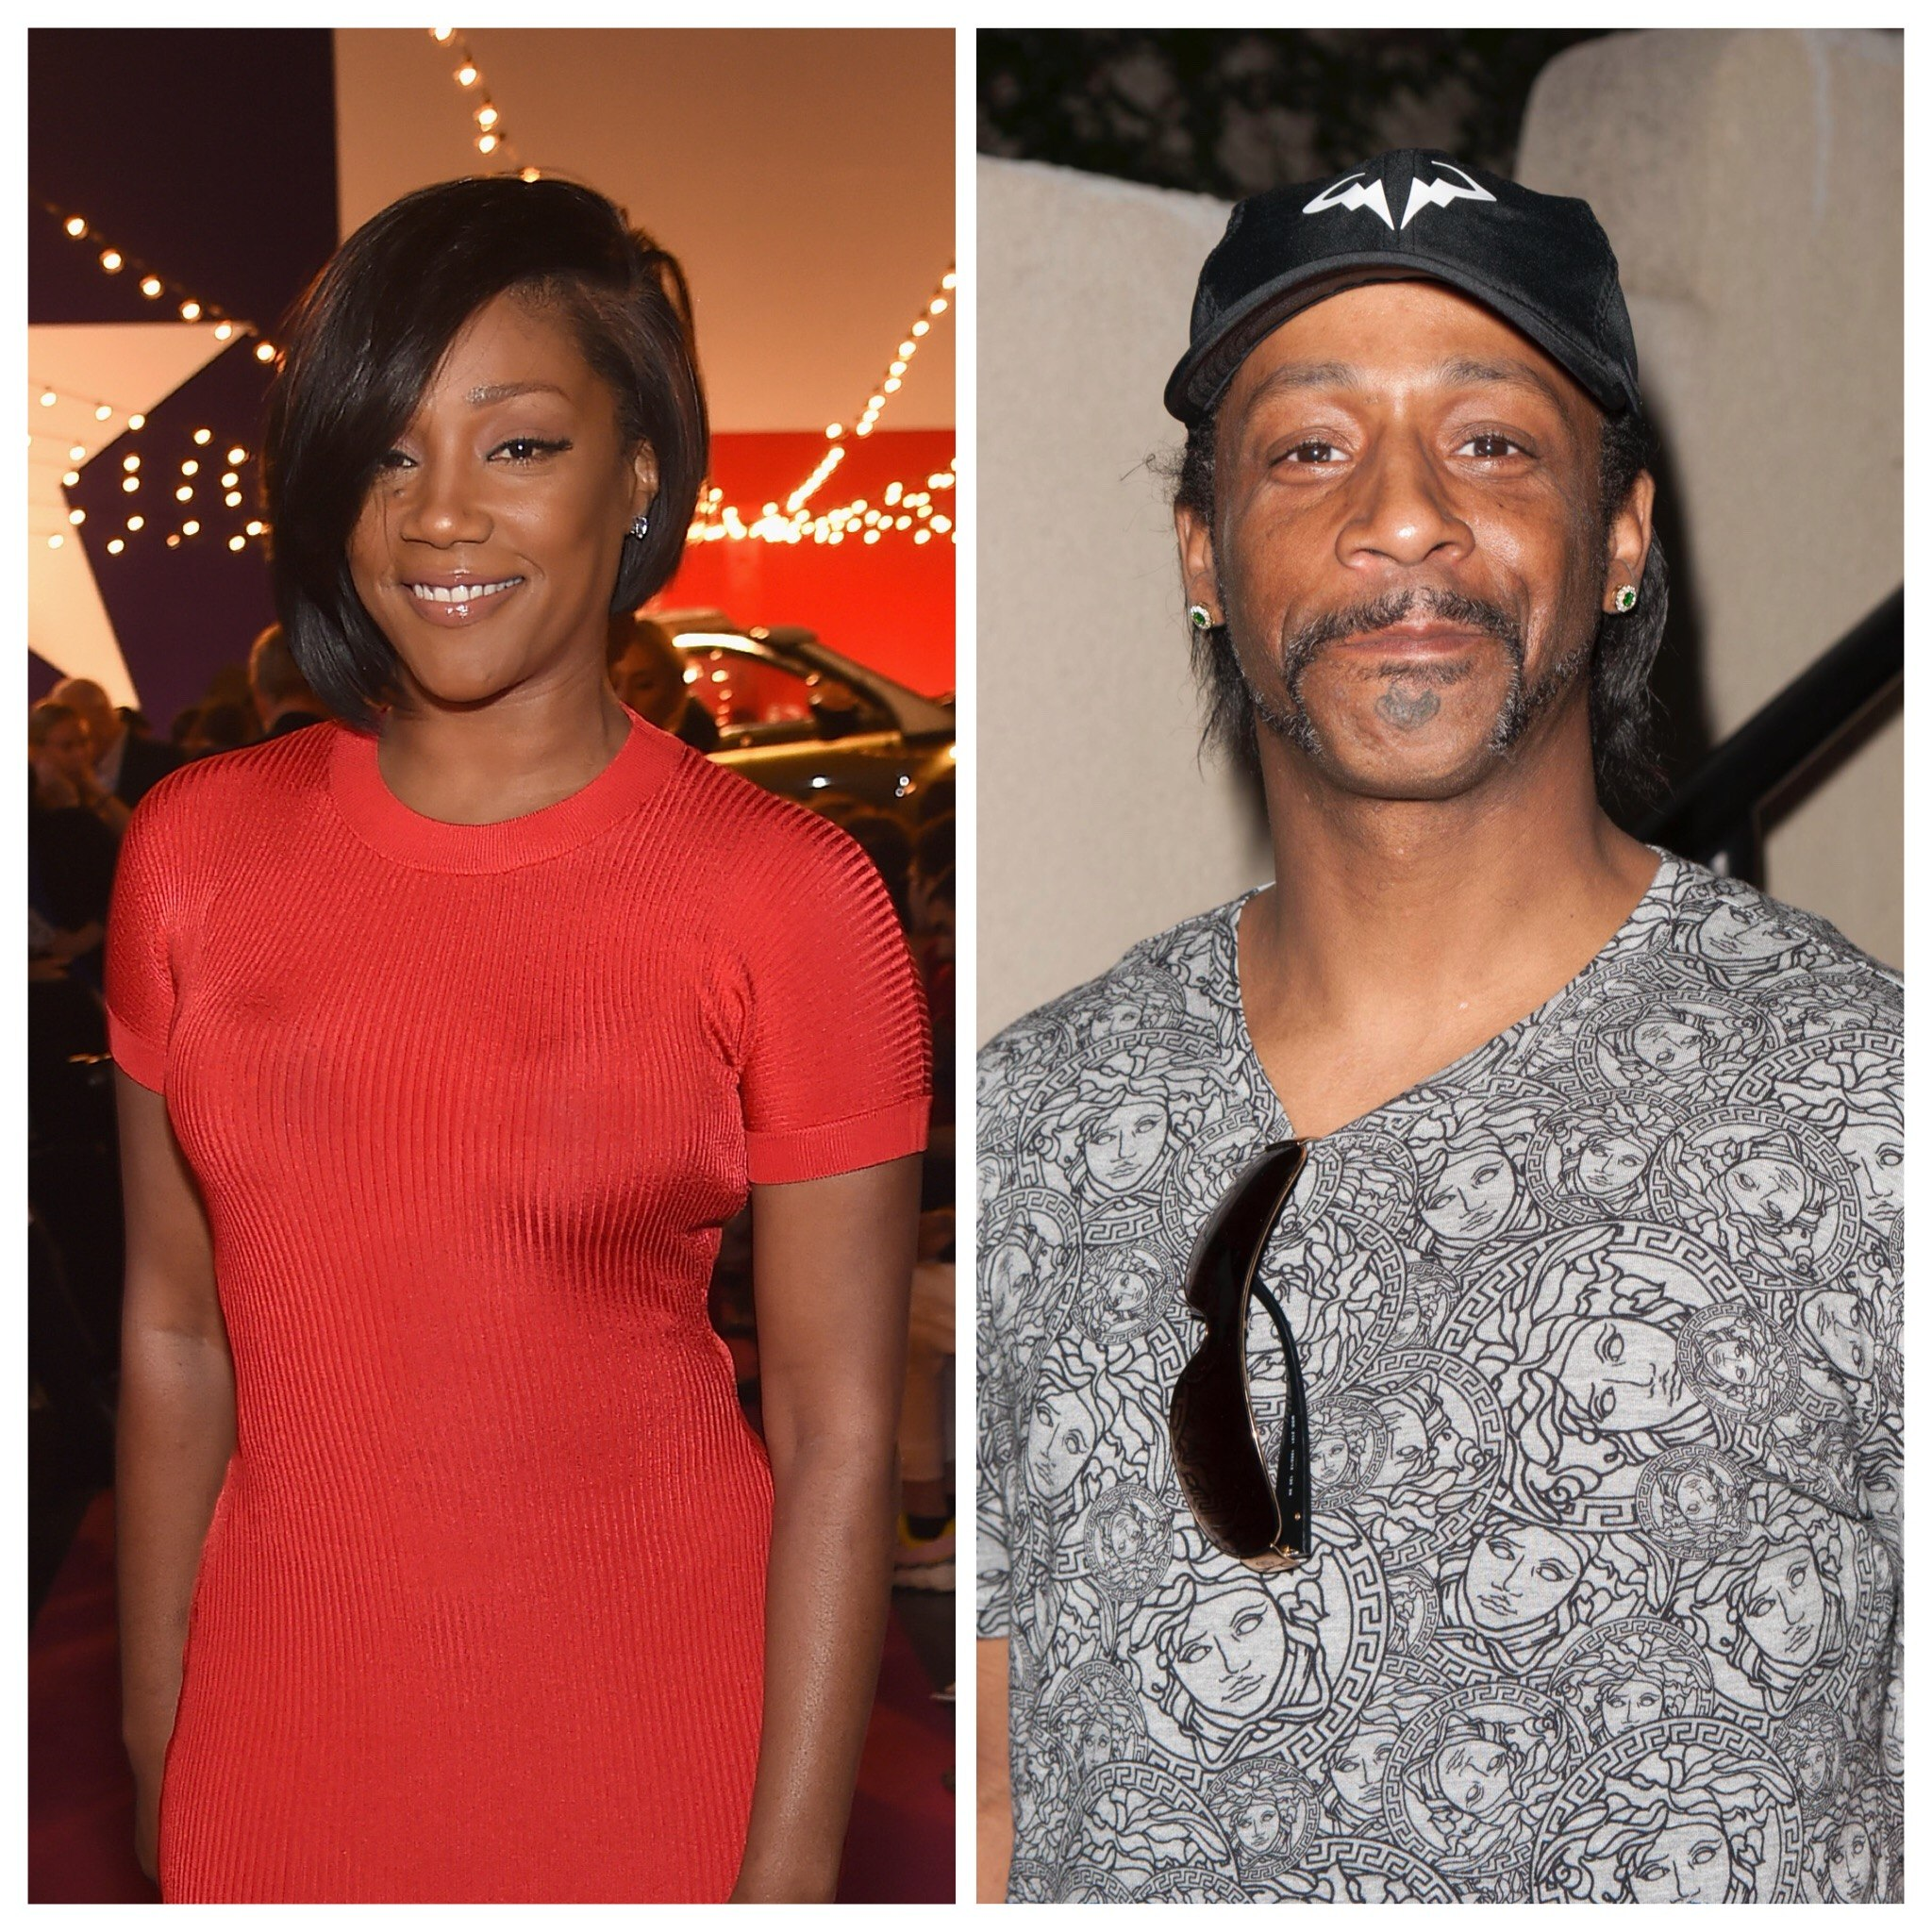 Tiffany Haddish And Katt Williams Win Emmys For Their Guest Appearances In A Comedy Series!